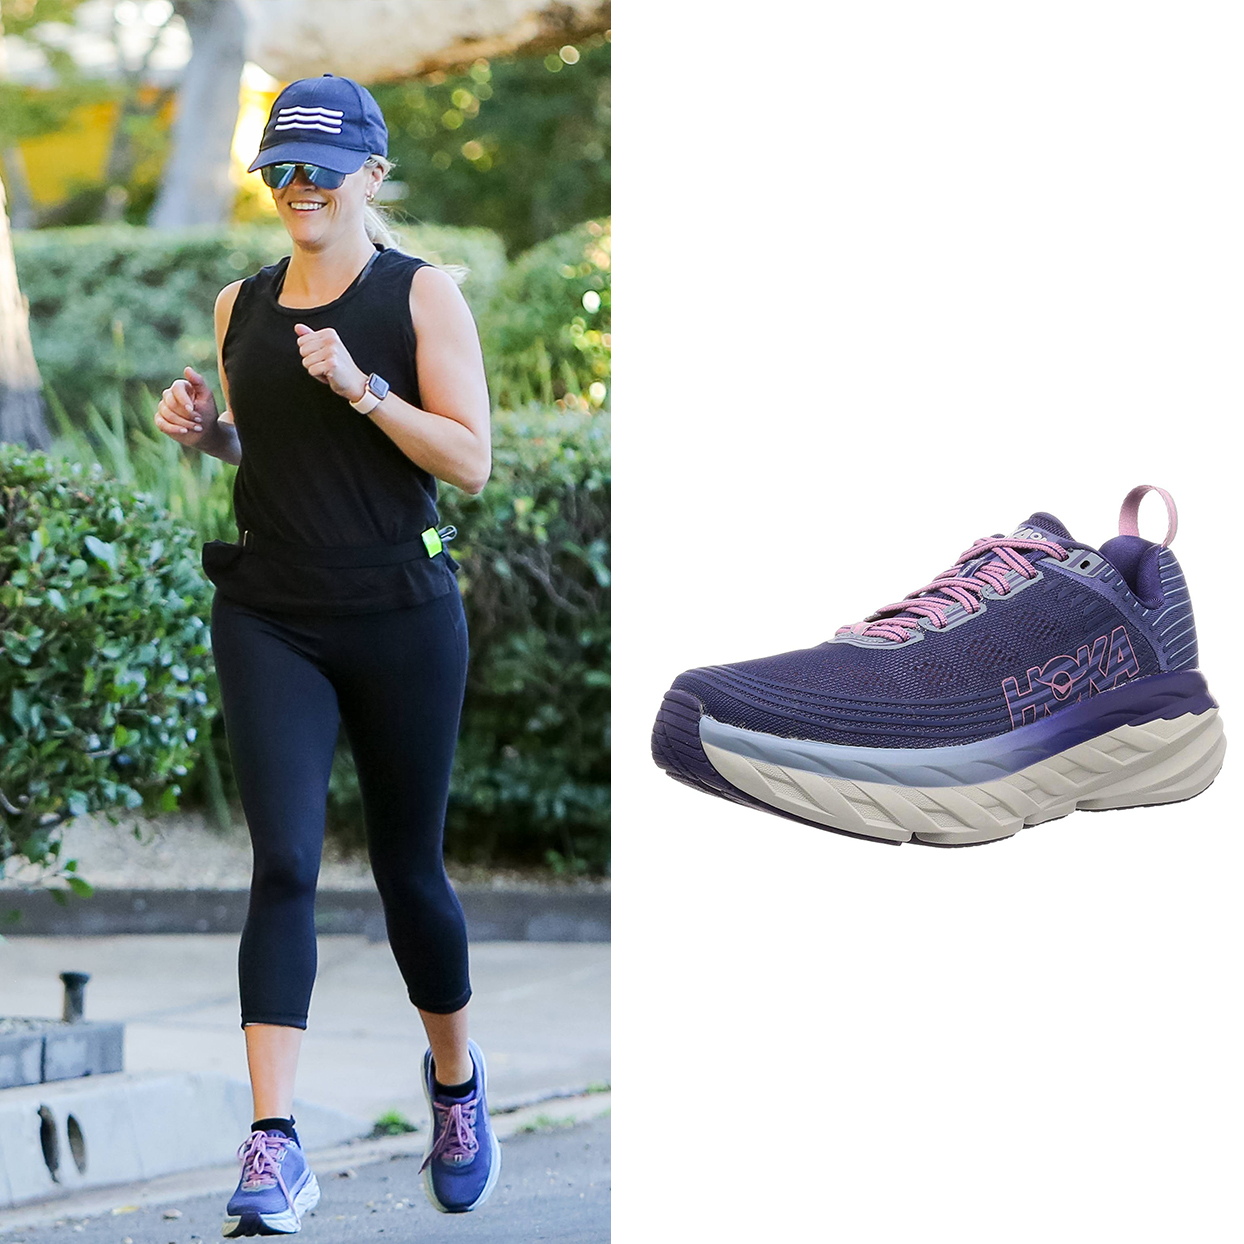 Reese Witherspoon, Britney Spears, and More Celebs Love These Comfy Sneakers—and They're On Nordstrom